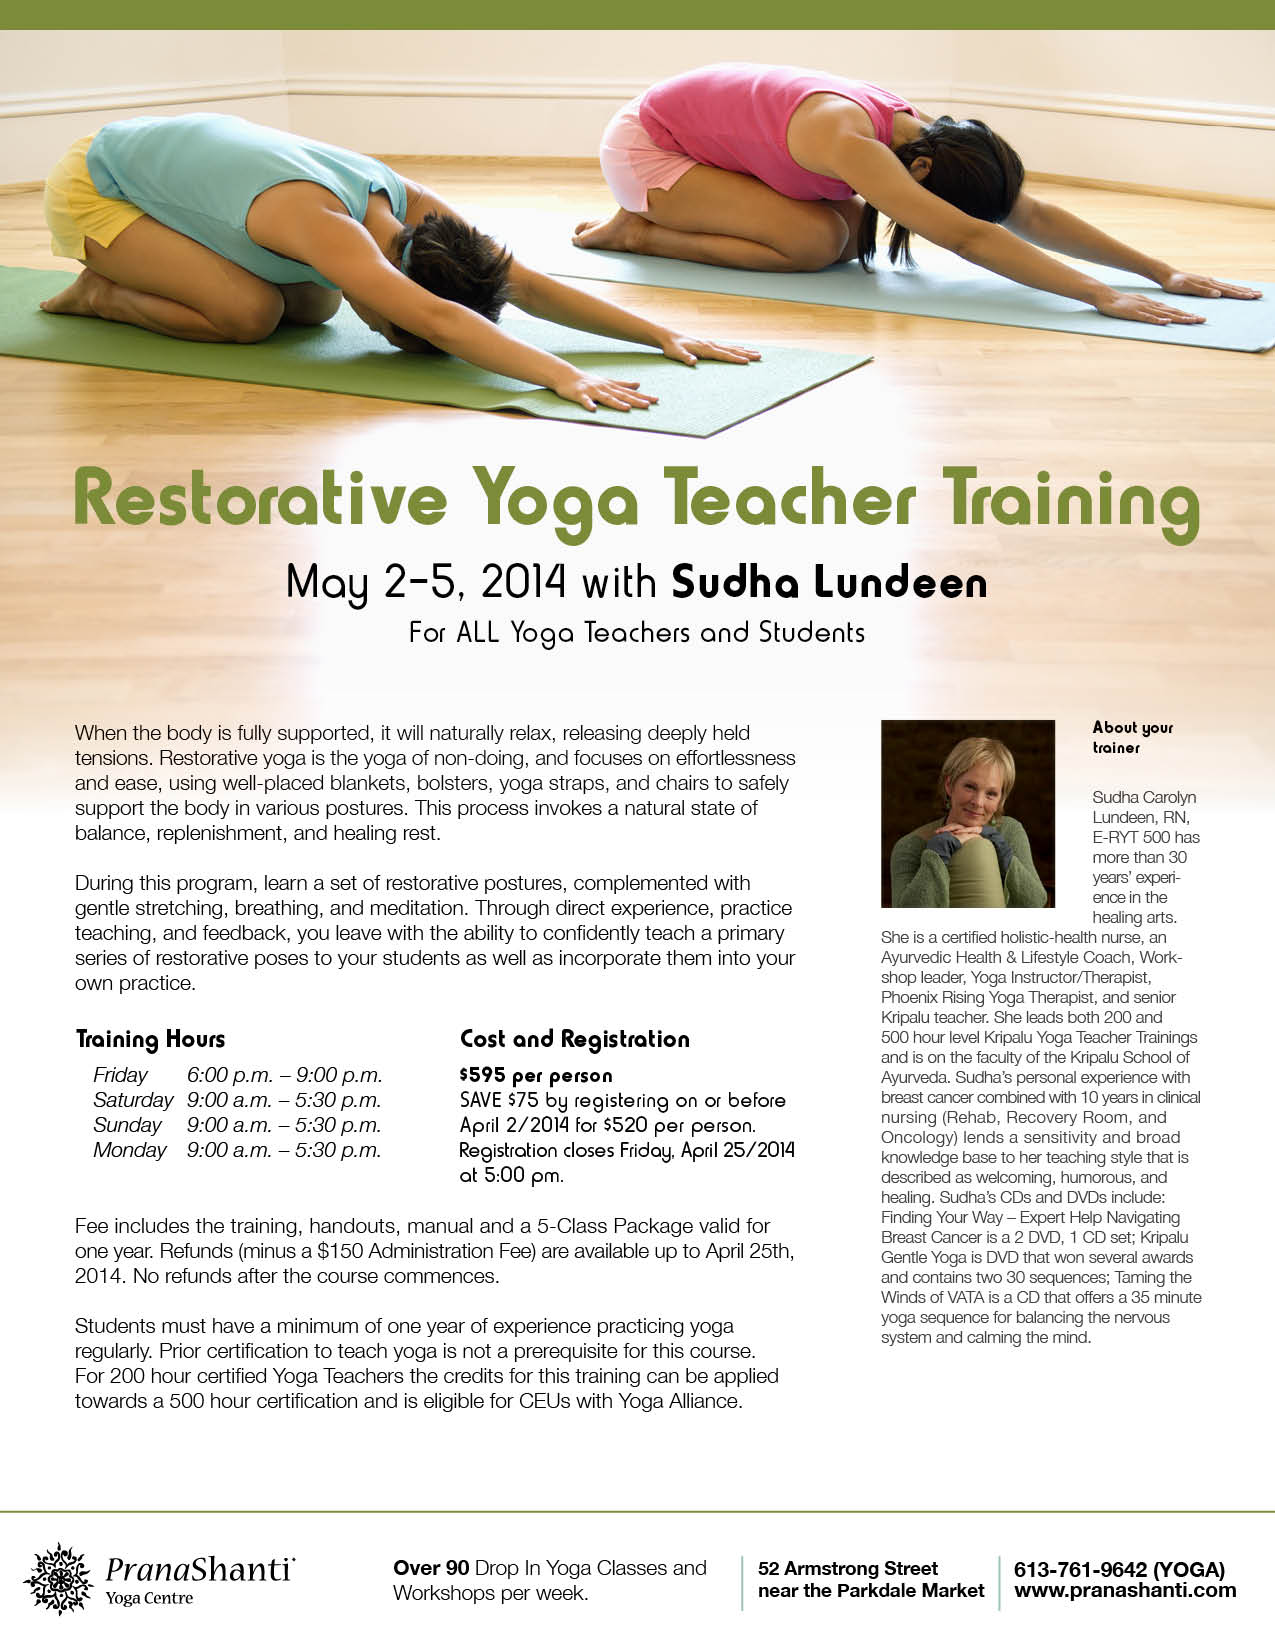 Restorative Yoga Teacher Training Pranashanti Ottawa On